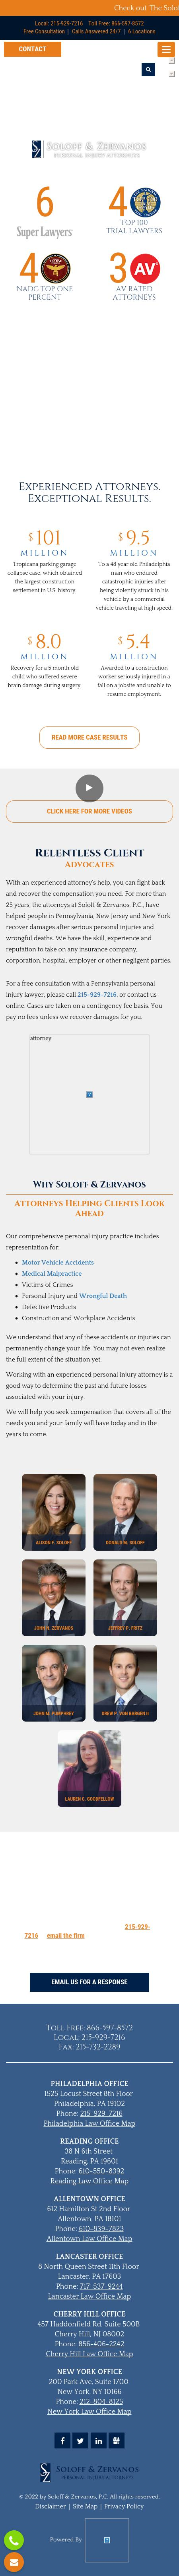 Soloff & Zervanos, P.C. - Reading PA Lawyers